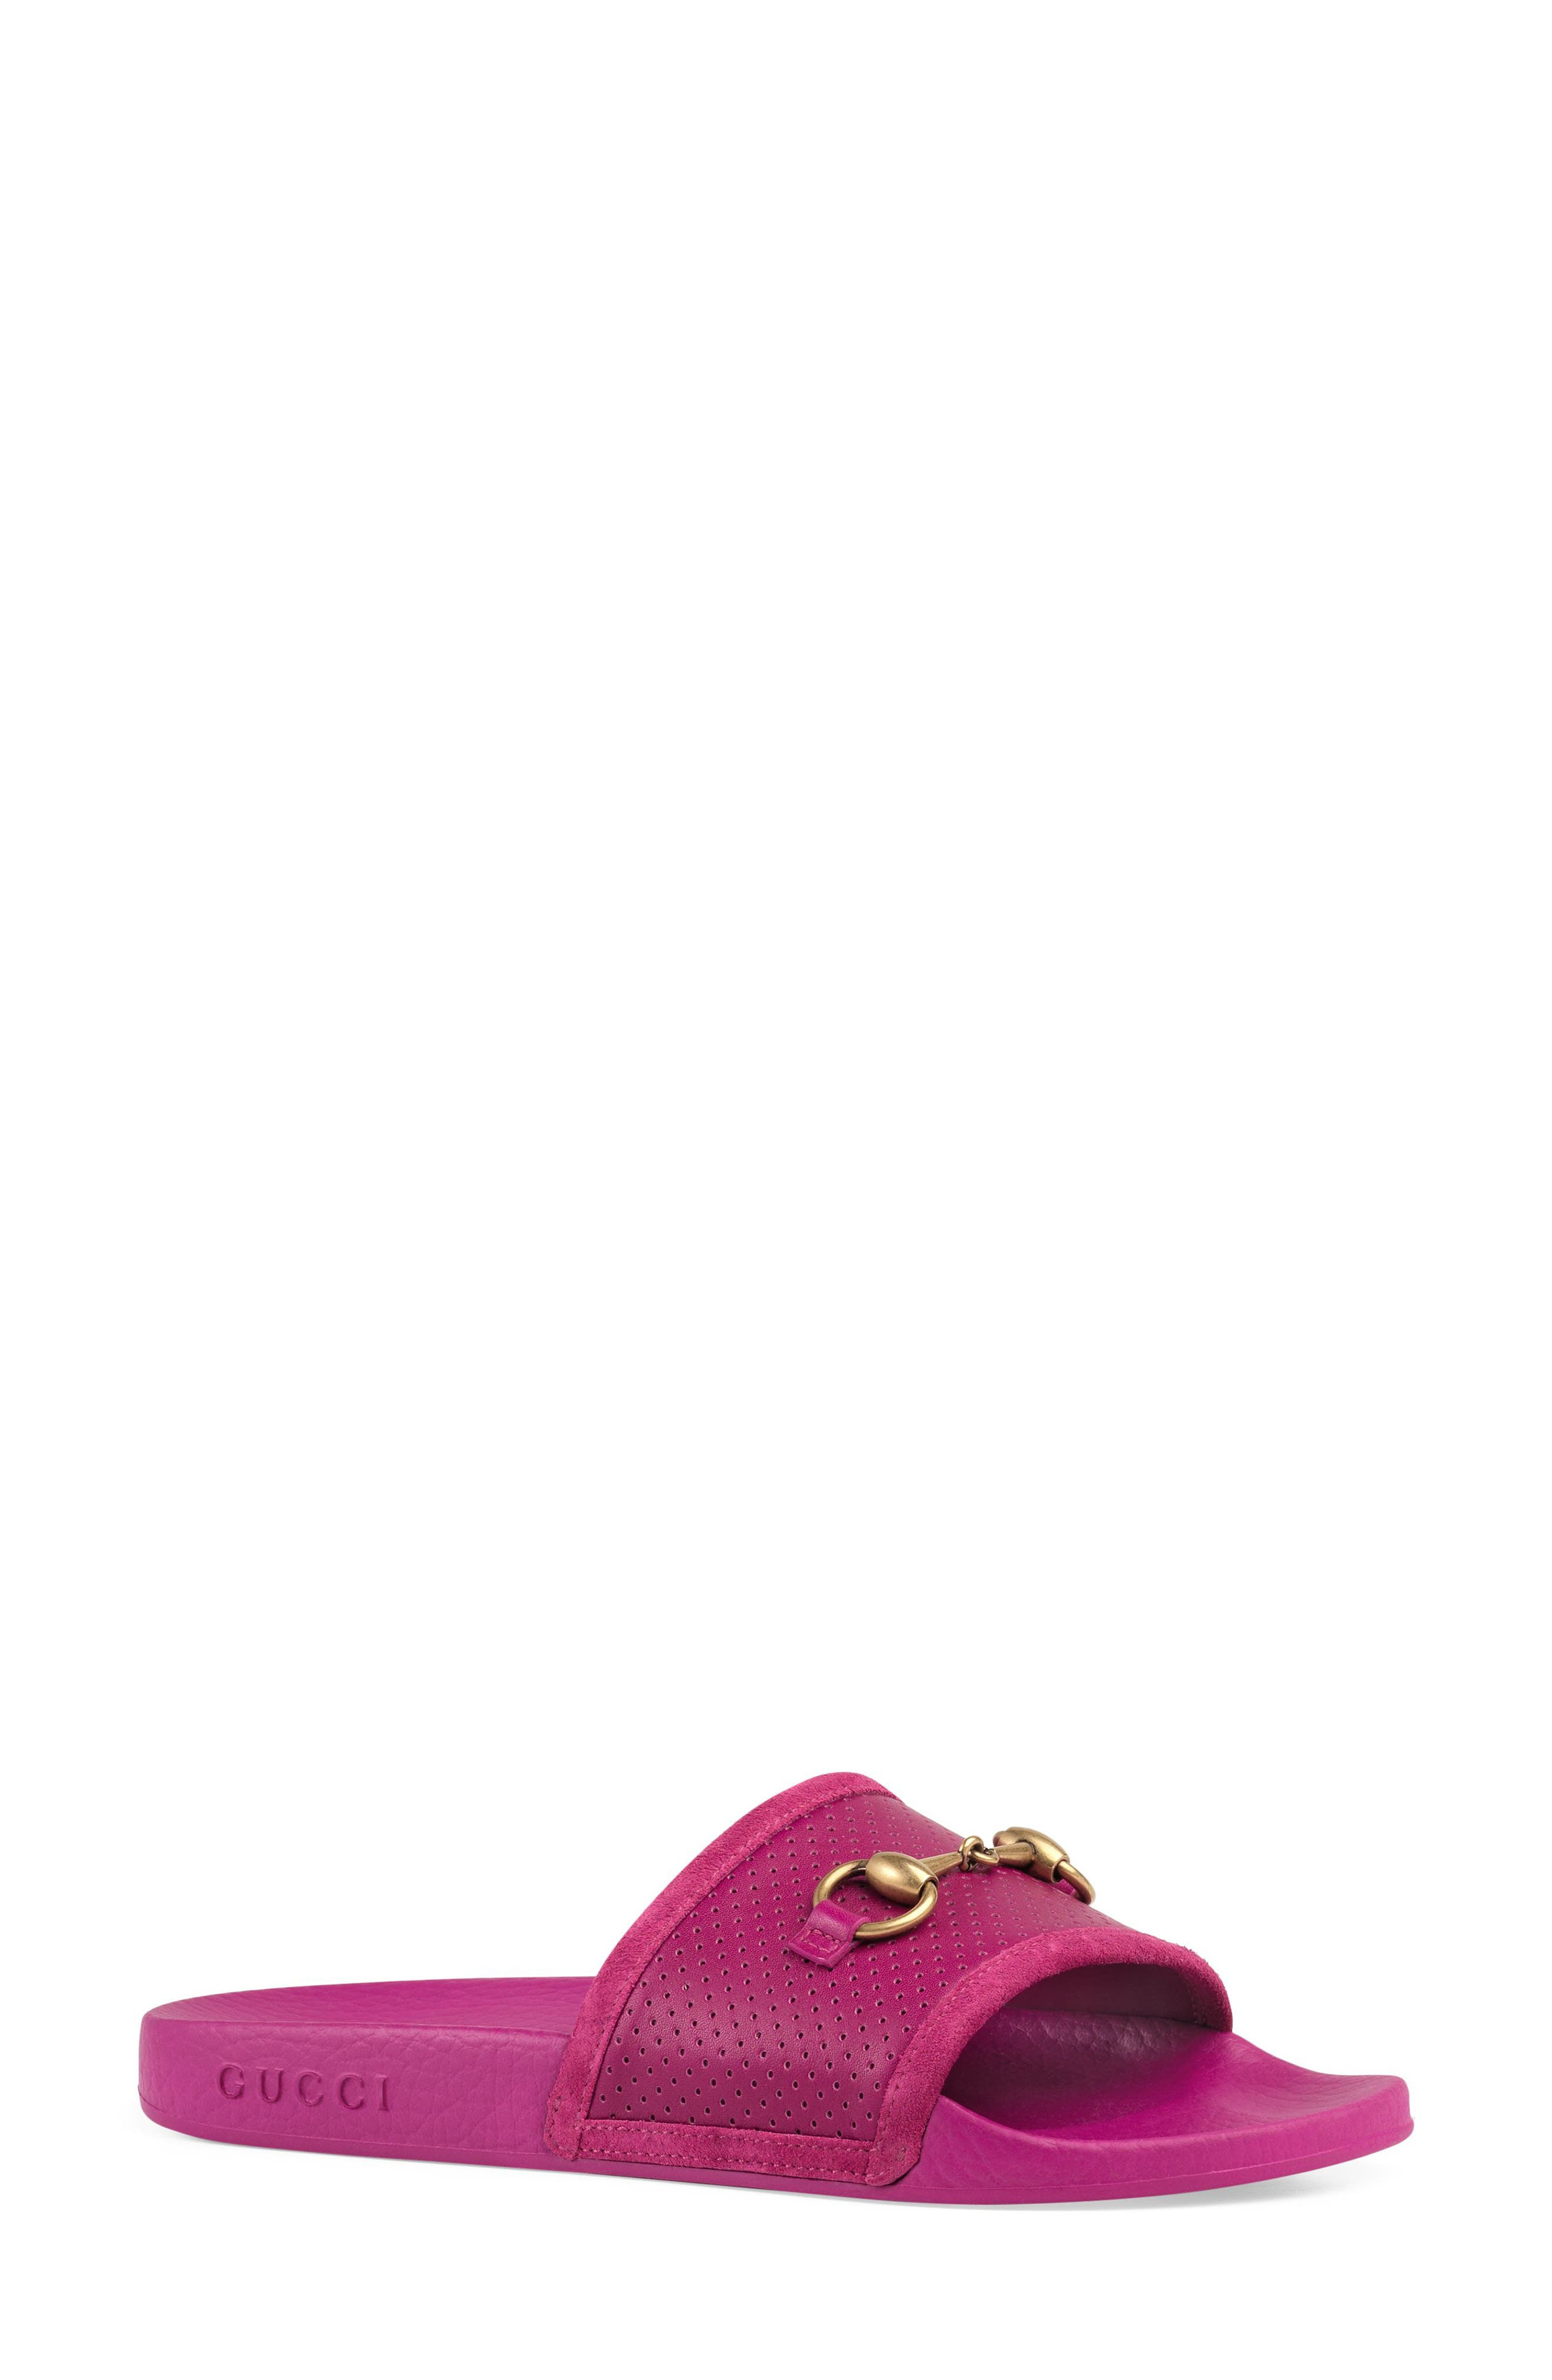 Horsebit Slide Sandal,                             Main thumbnail 1, color,                             Dark Pink